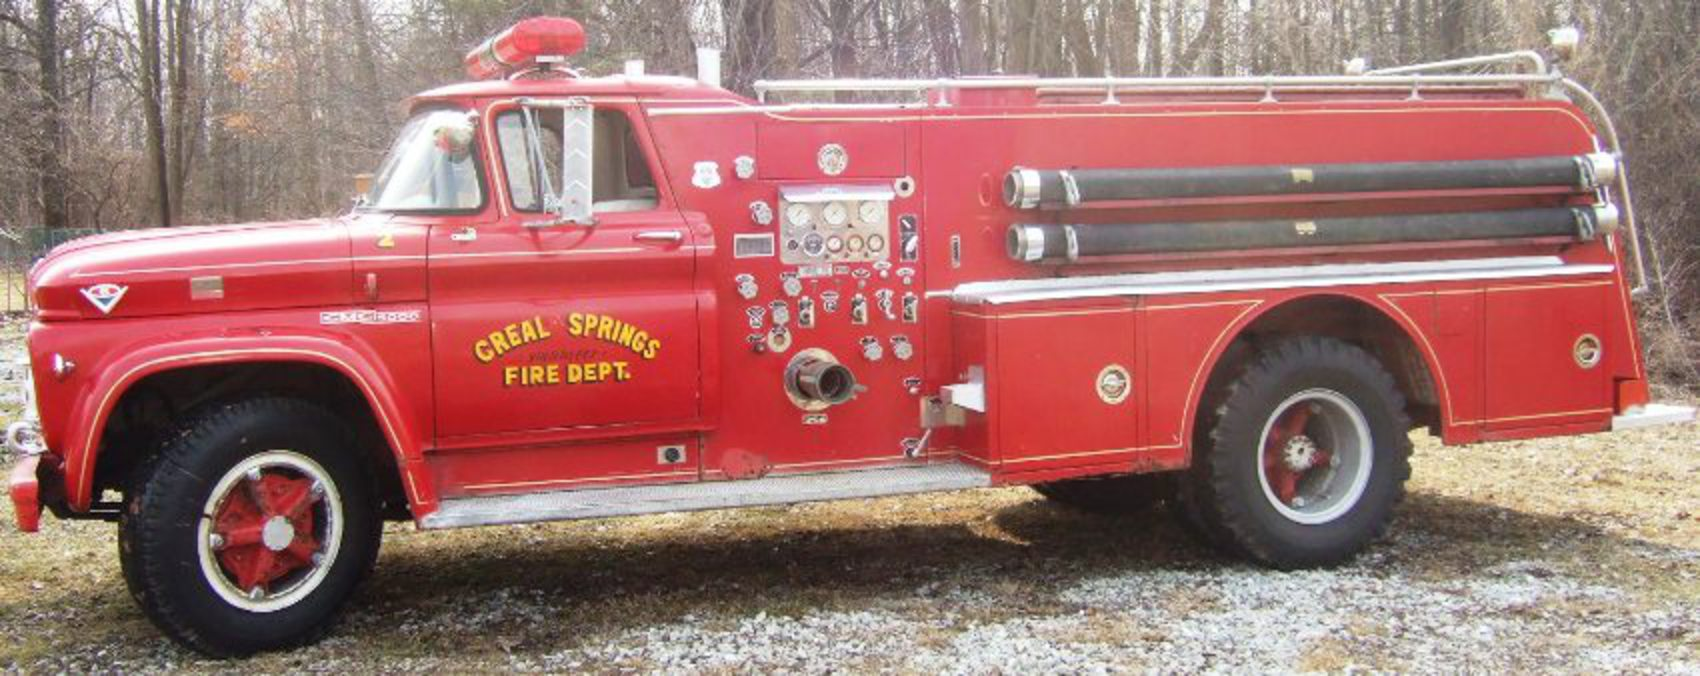 A 1963 GMC Fire Truck from Creal Springs Fire Department was one of five